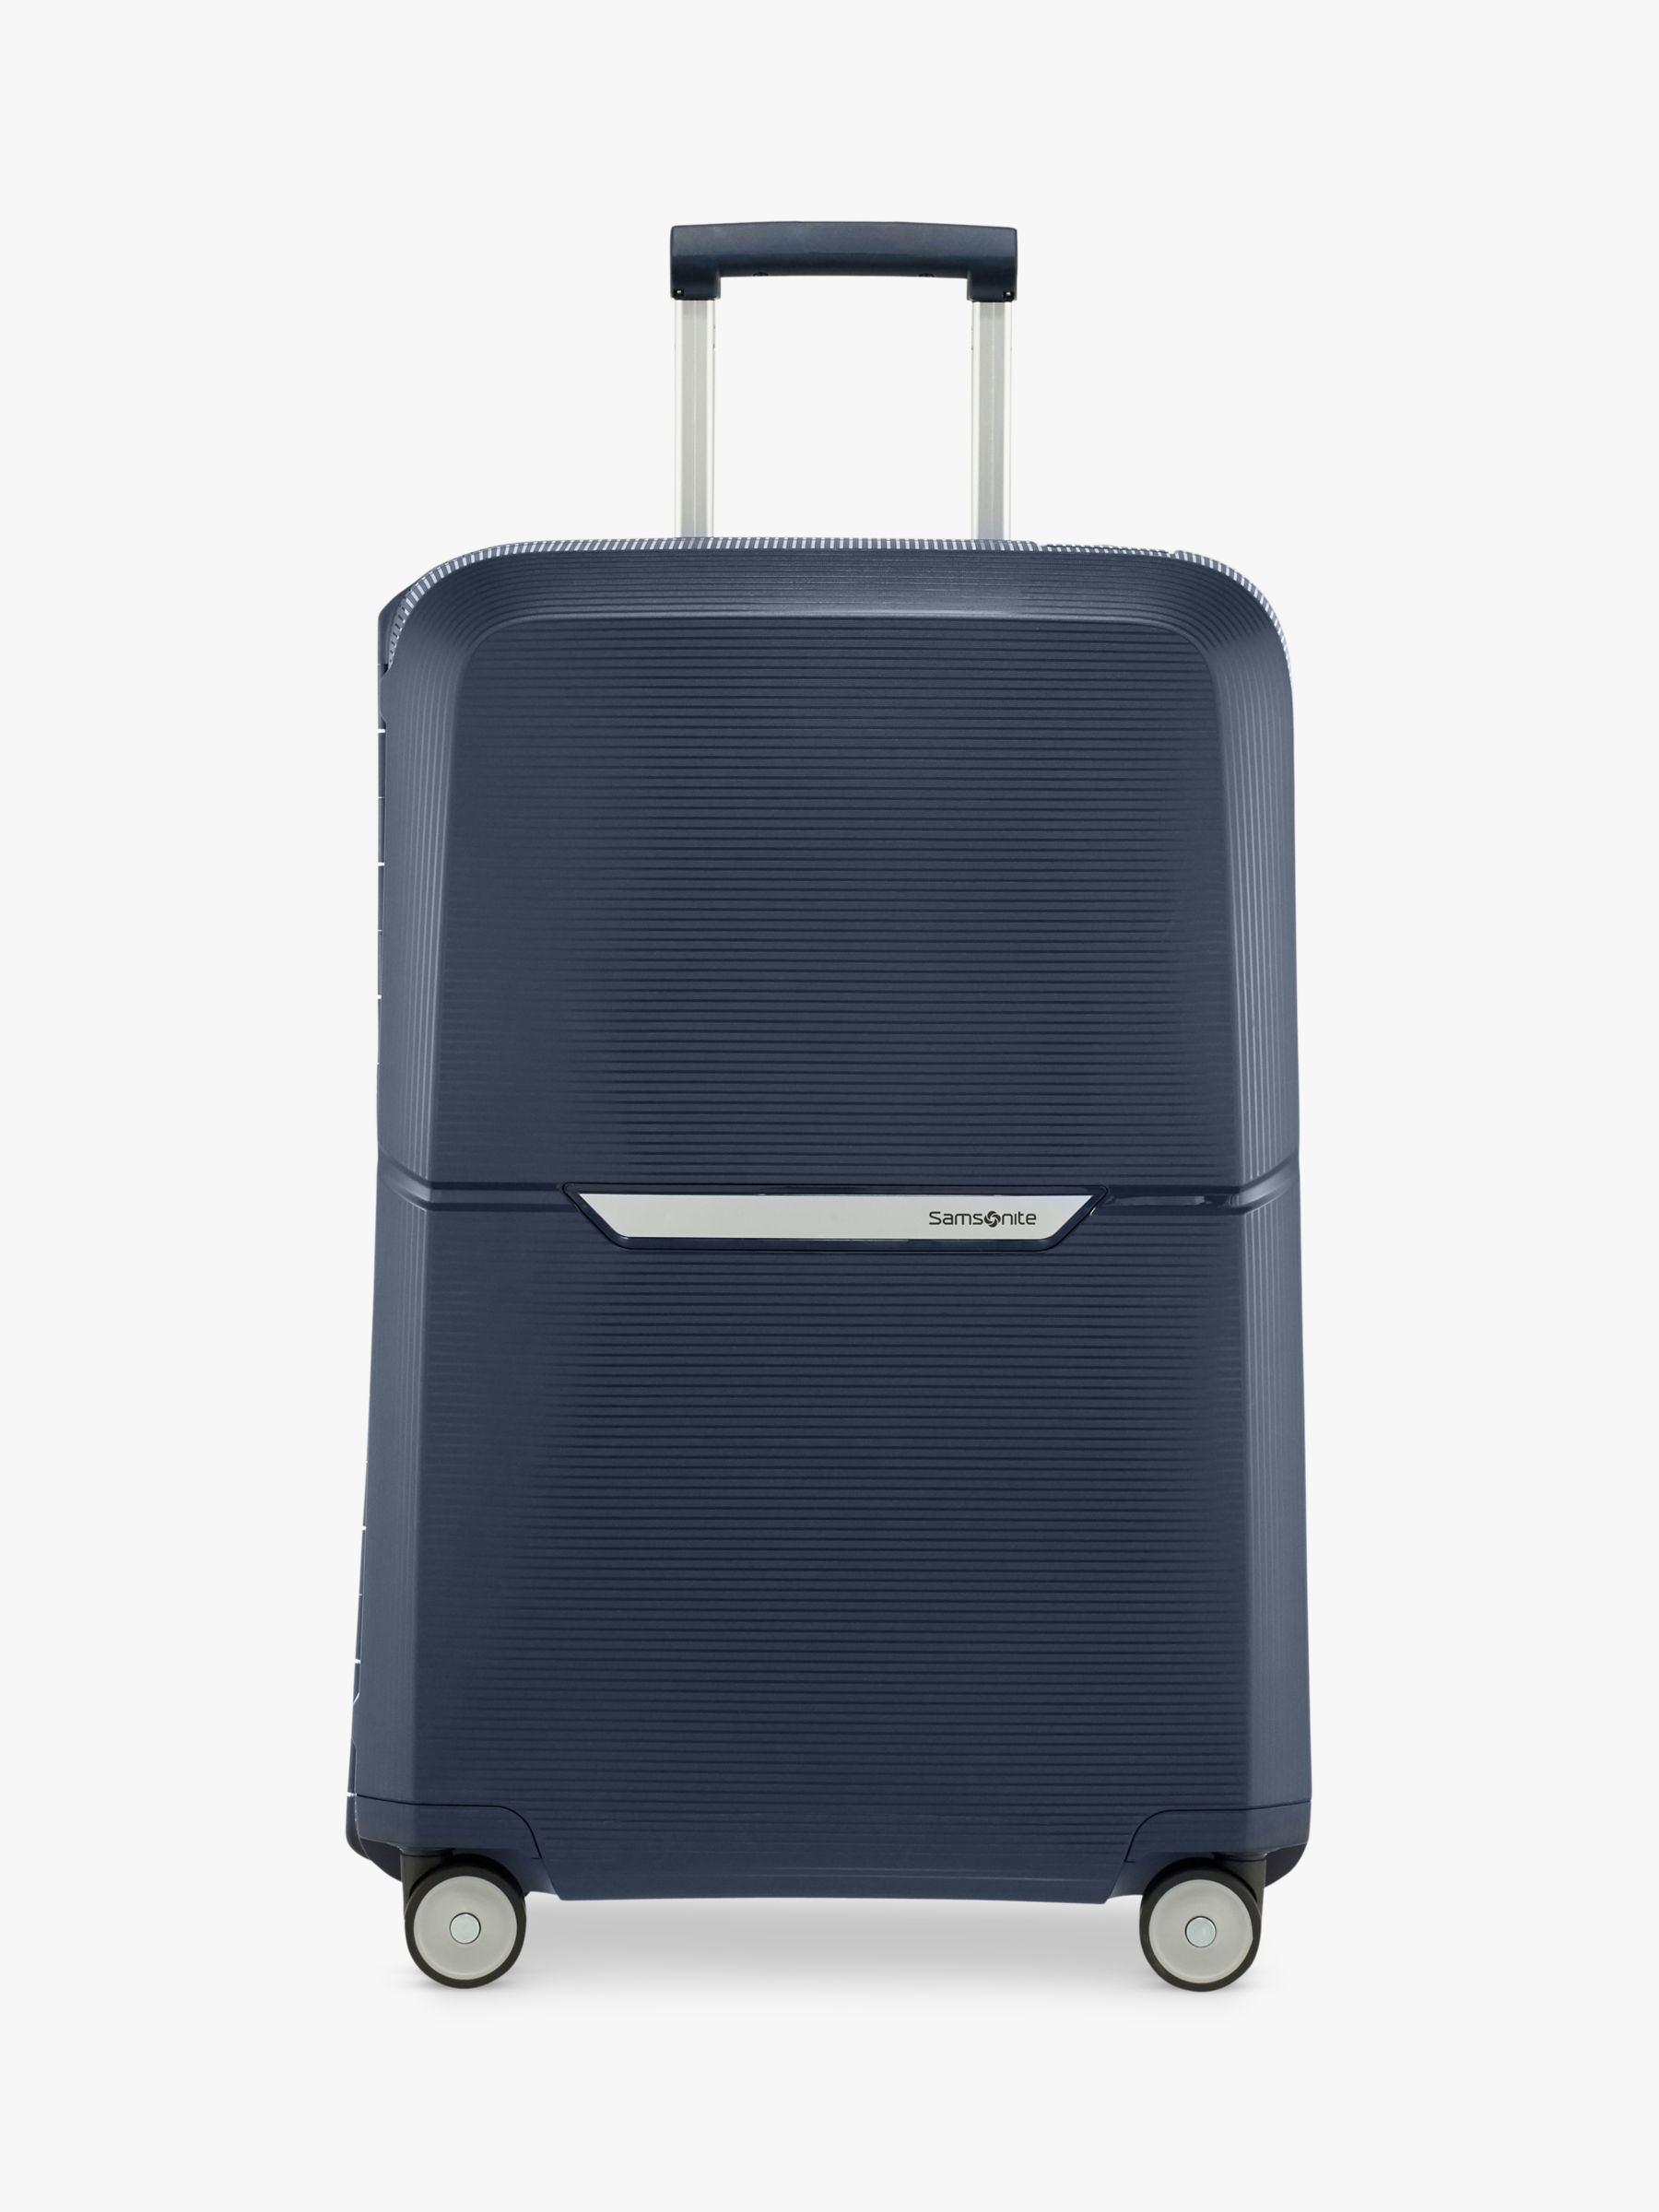 Samsonite Samsonite Magnum Spinner 4-Wheel 75cm Large Case